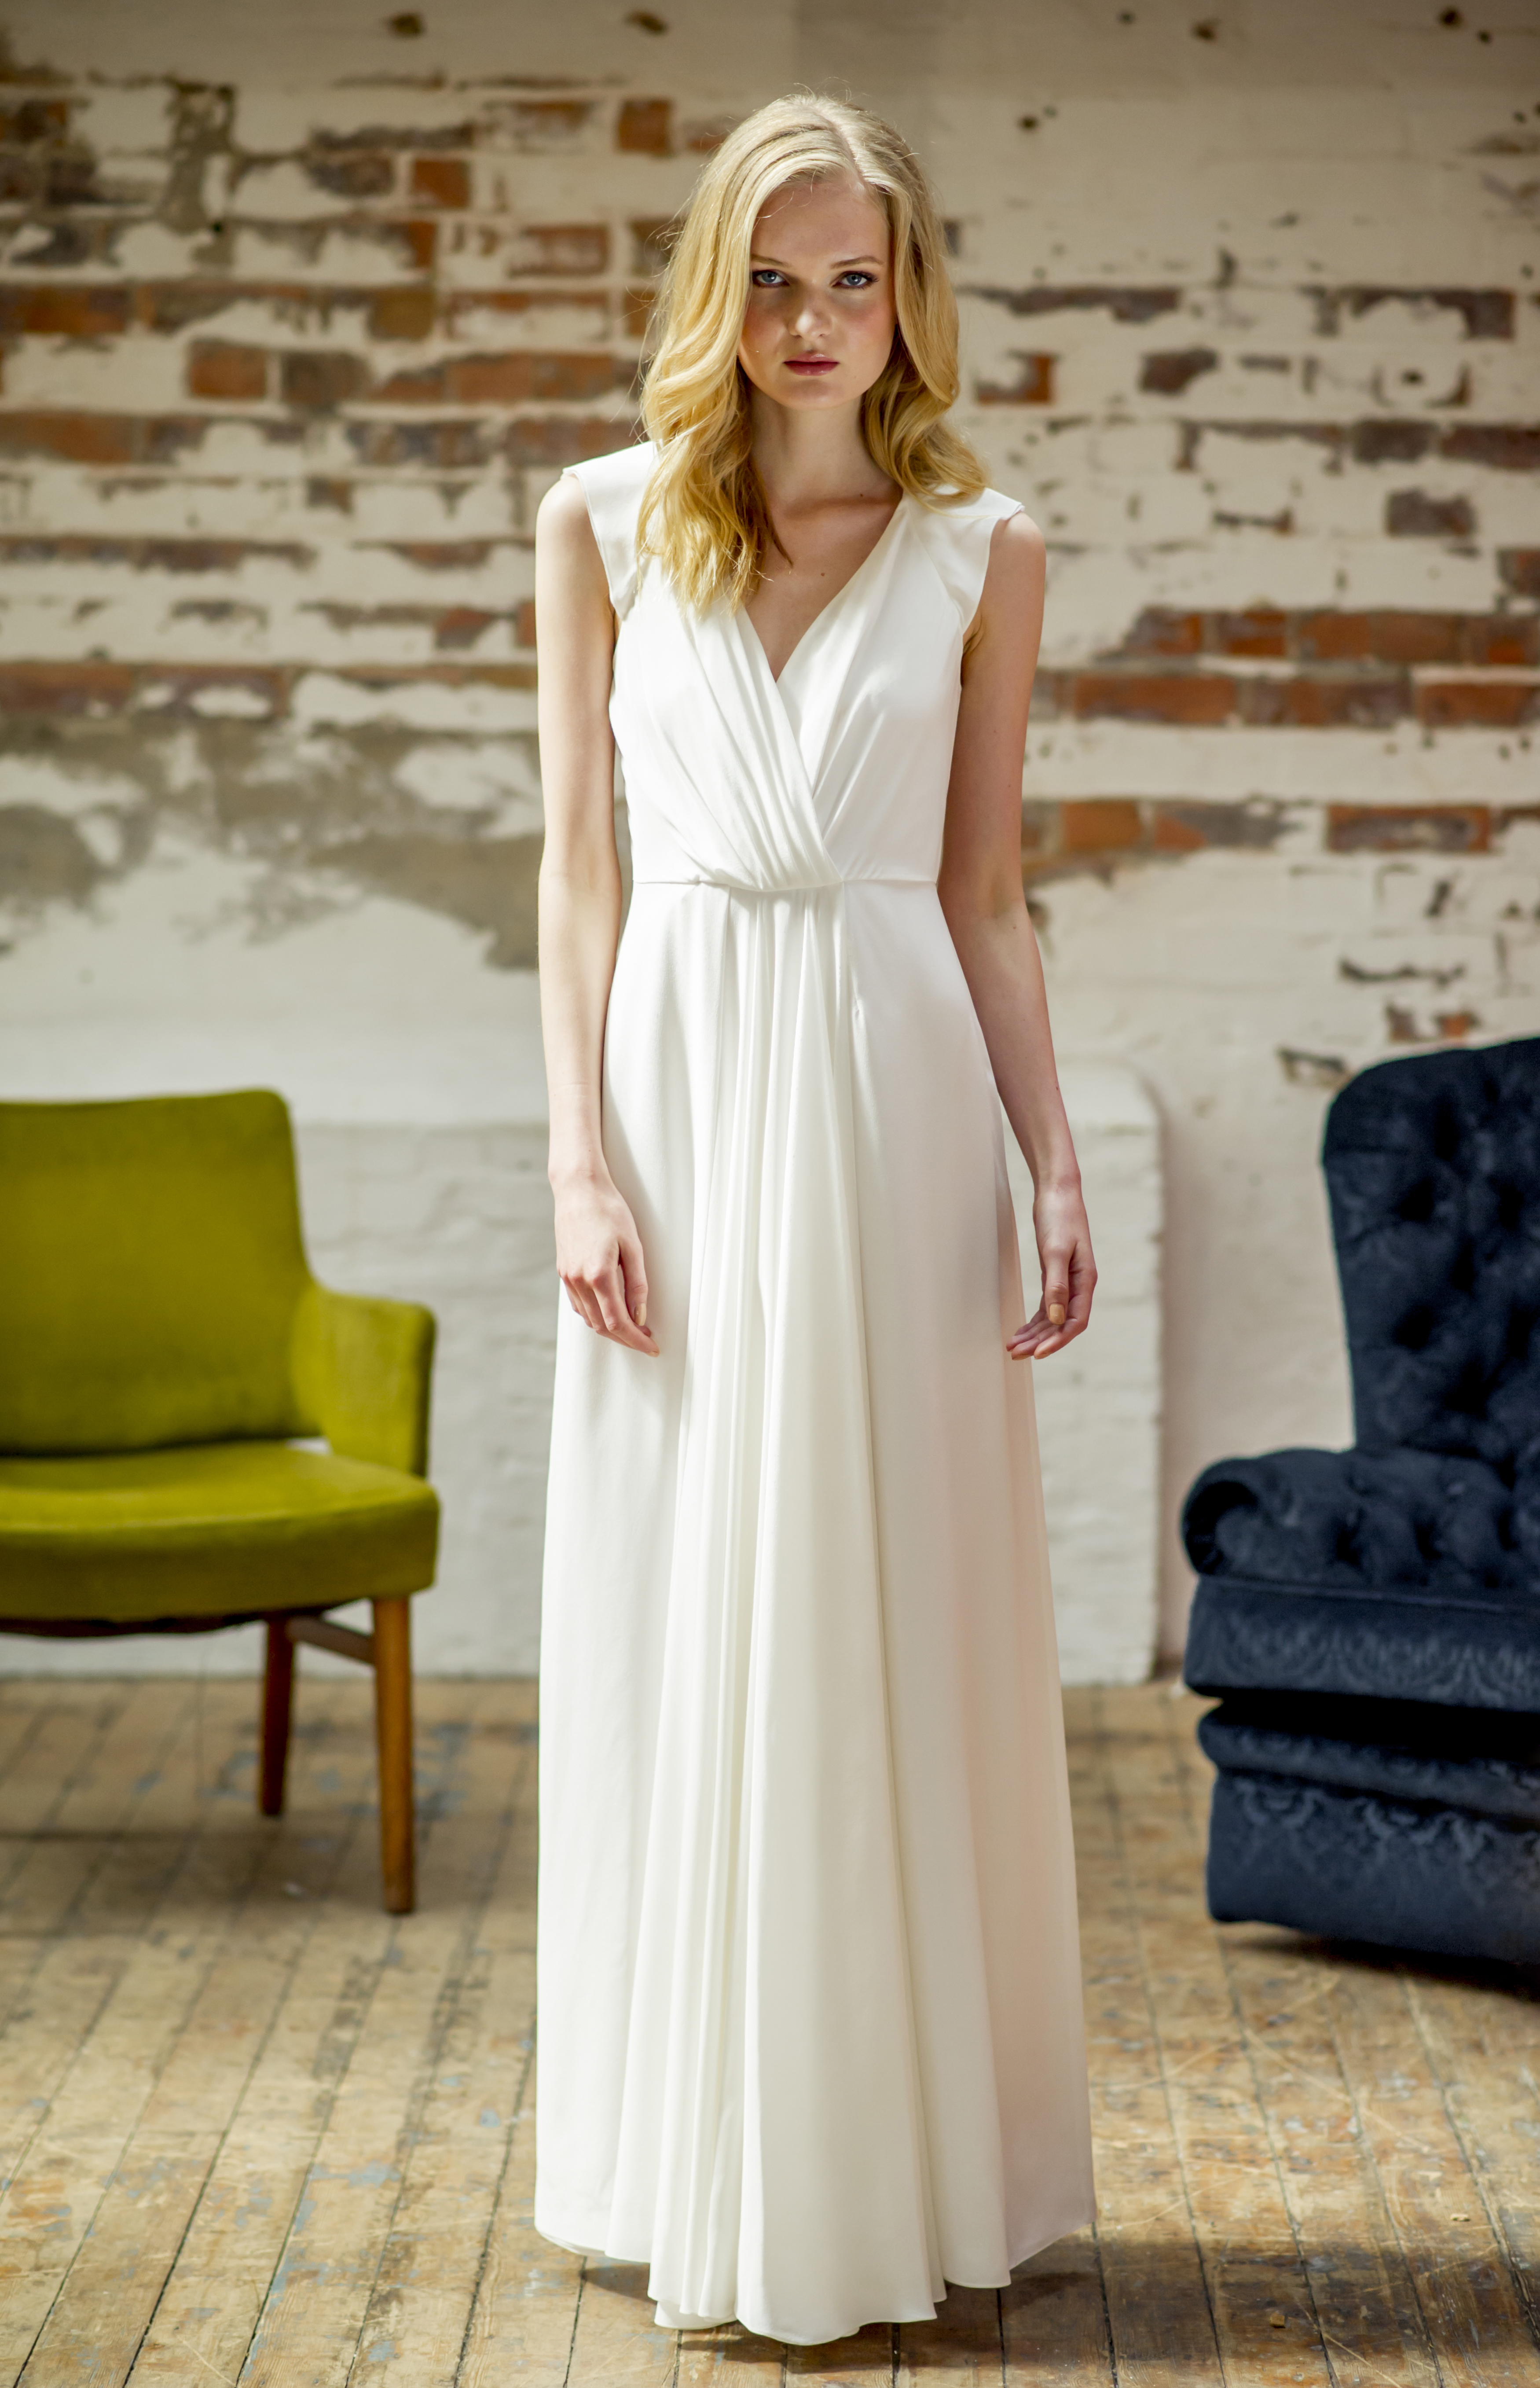 Thierry Joubert Atelier Anonyme Robes De Mariee Collection